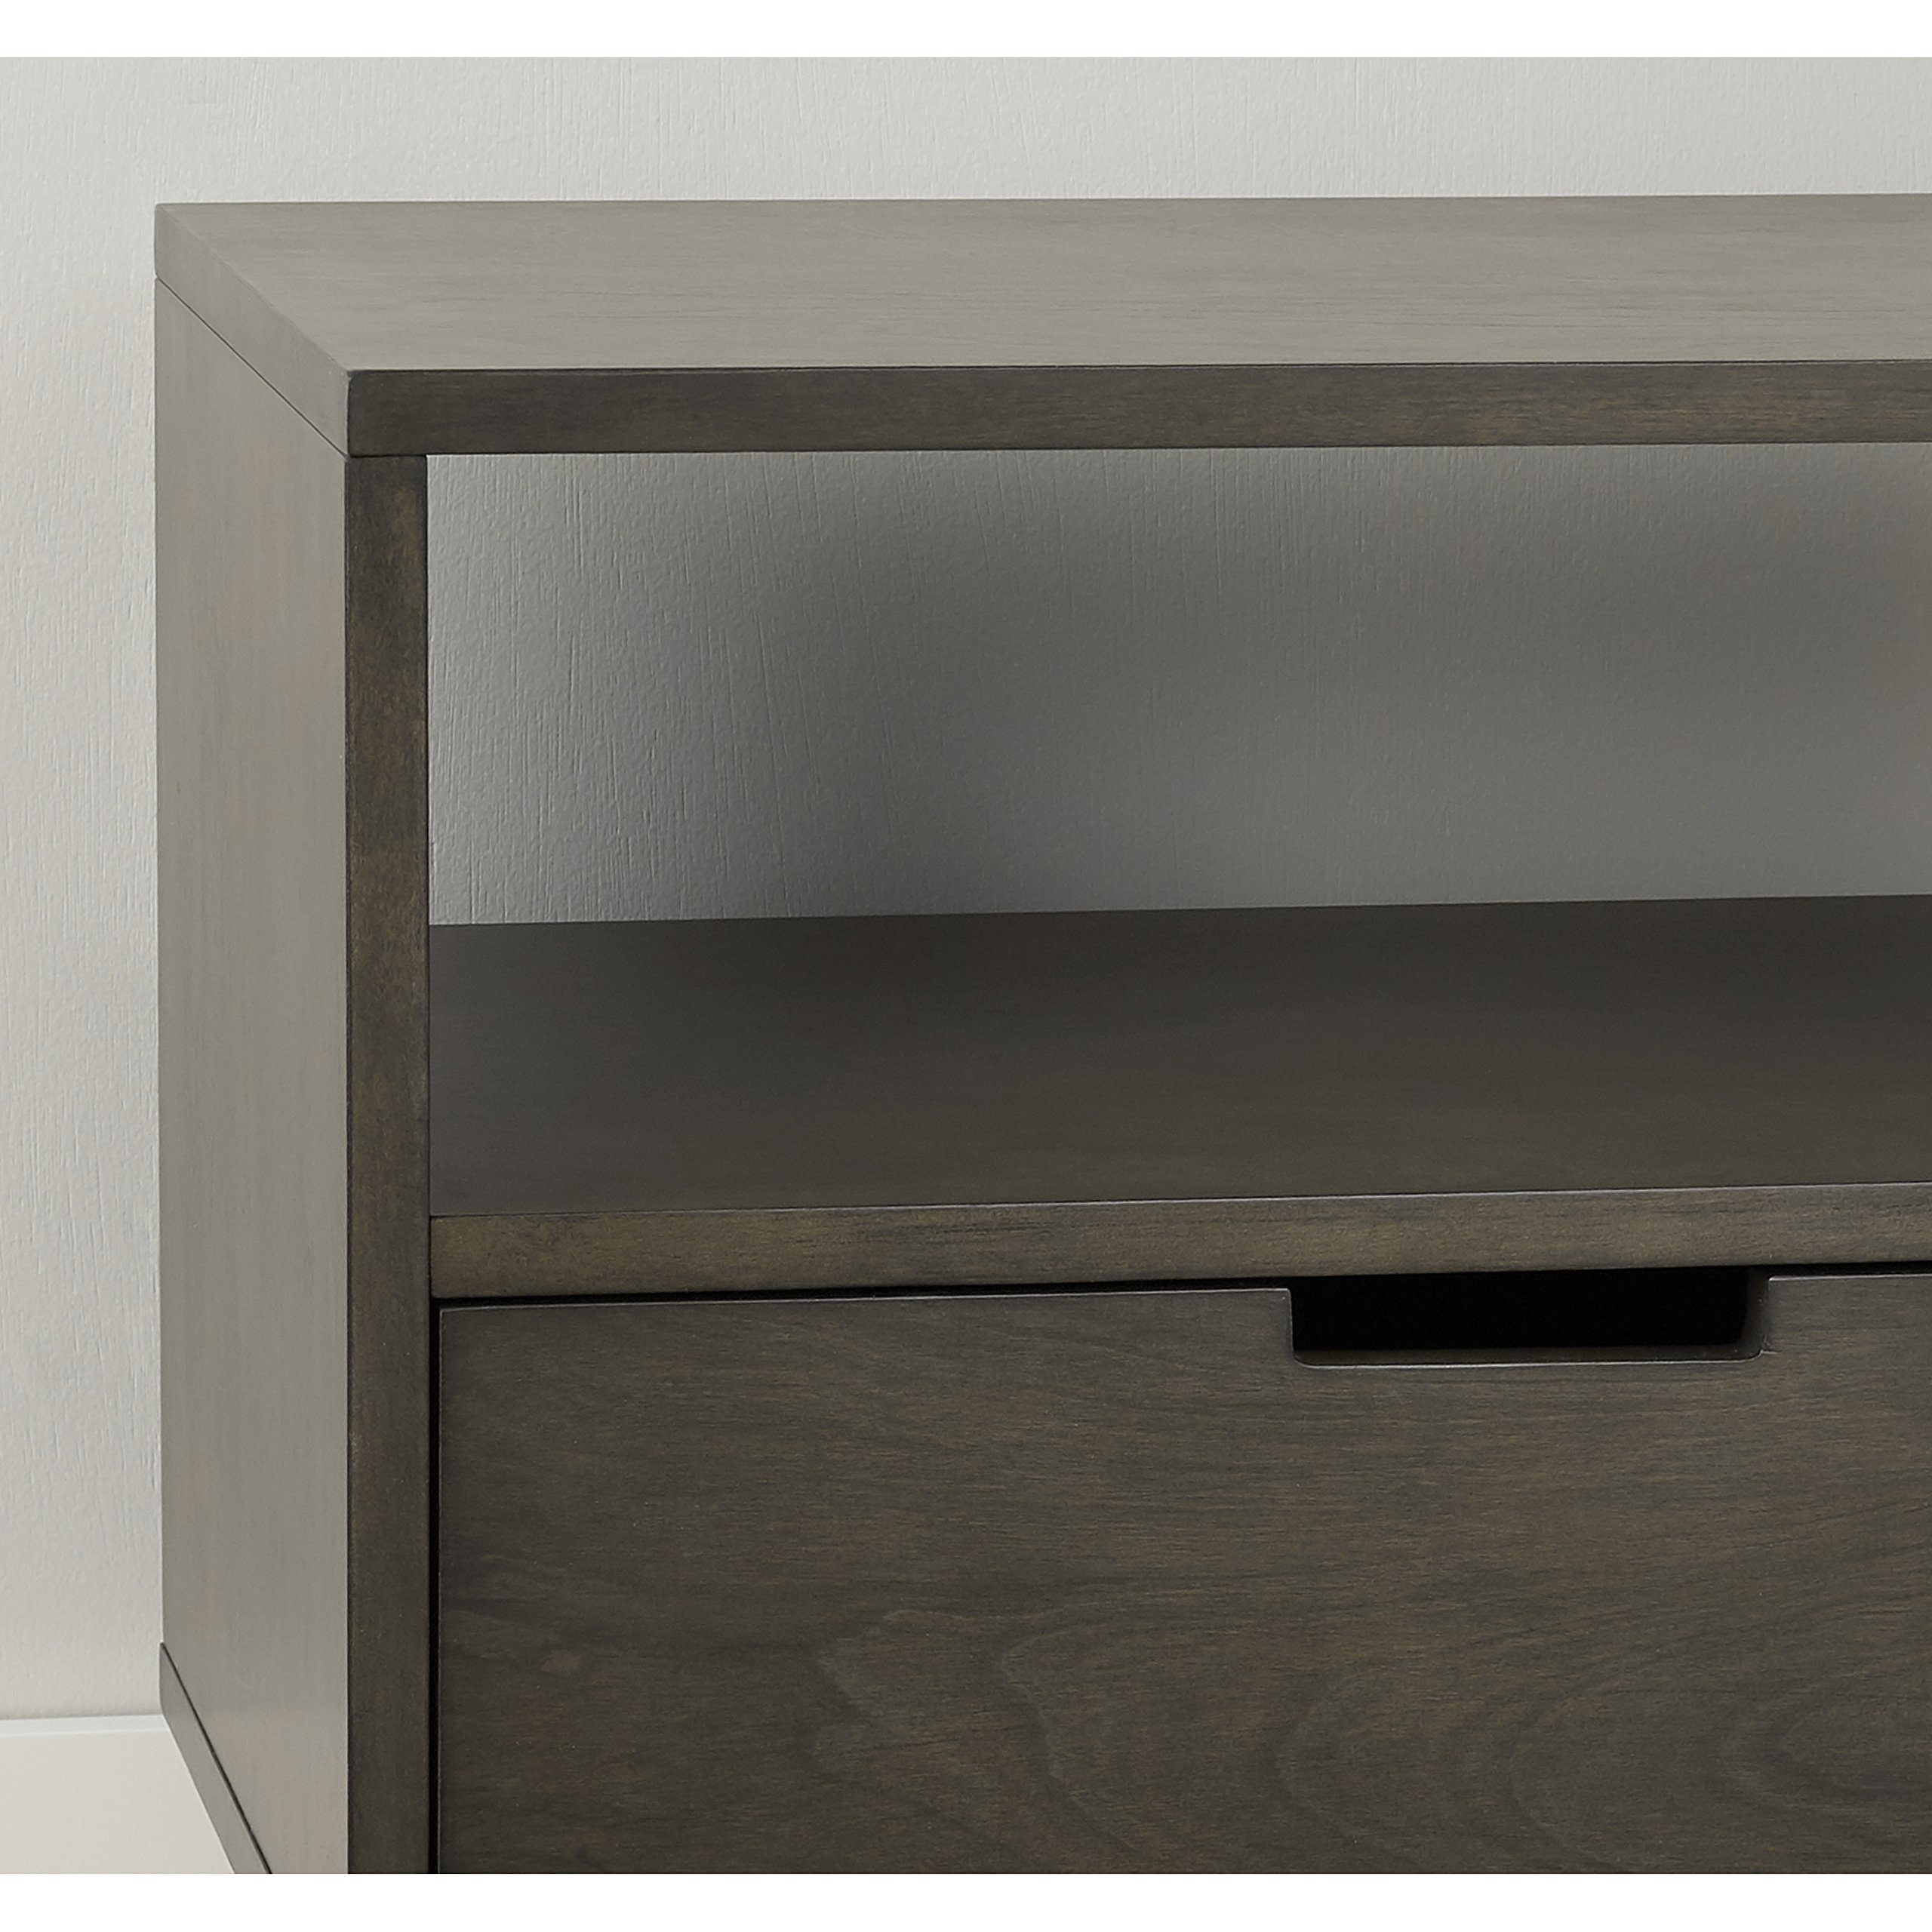 Better Homes and Gardens Flynn Mid Century Modern Credenza, Smoke Gray by Better Homes and Gardens (Image #4)